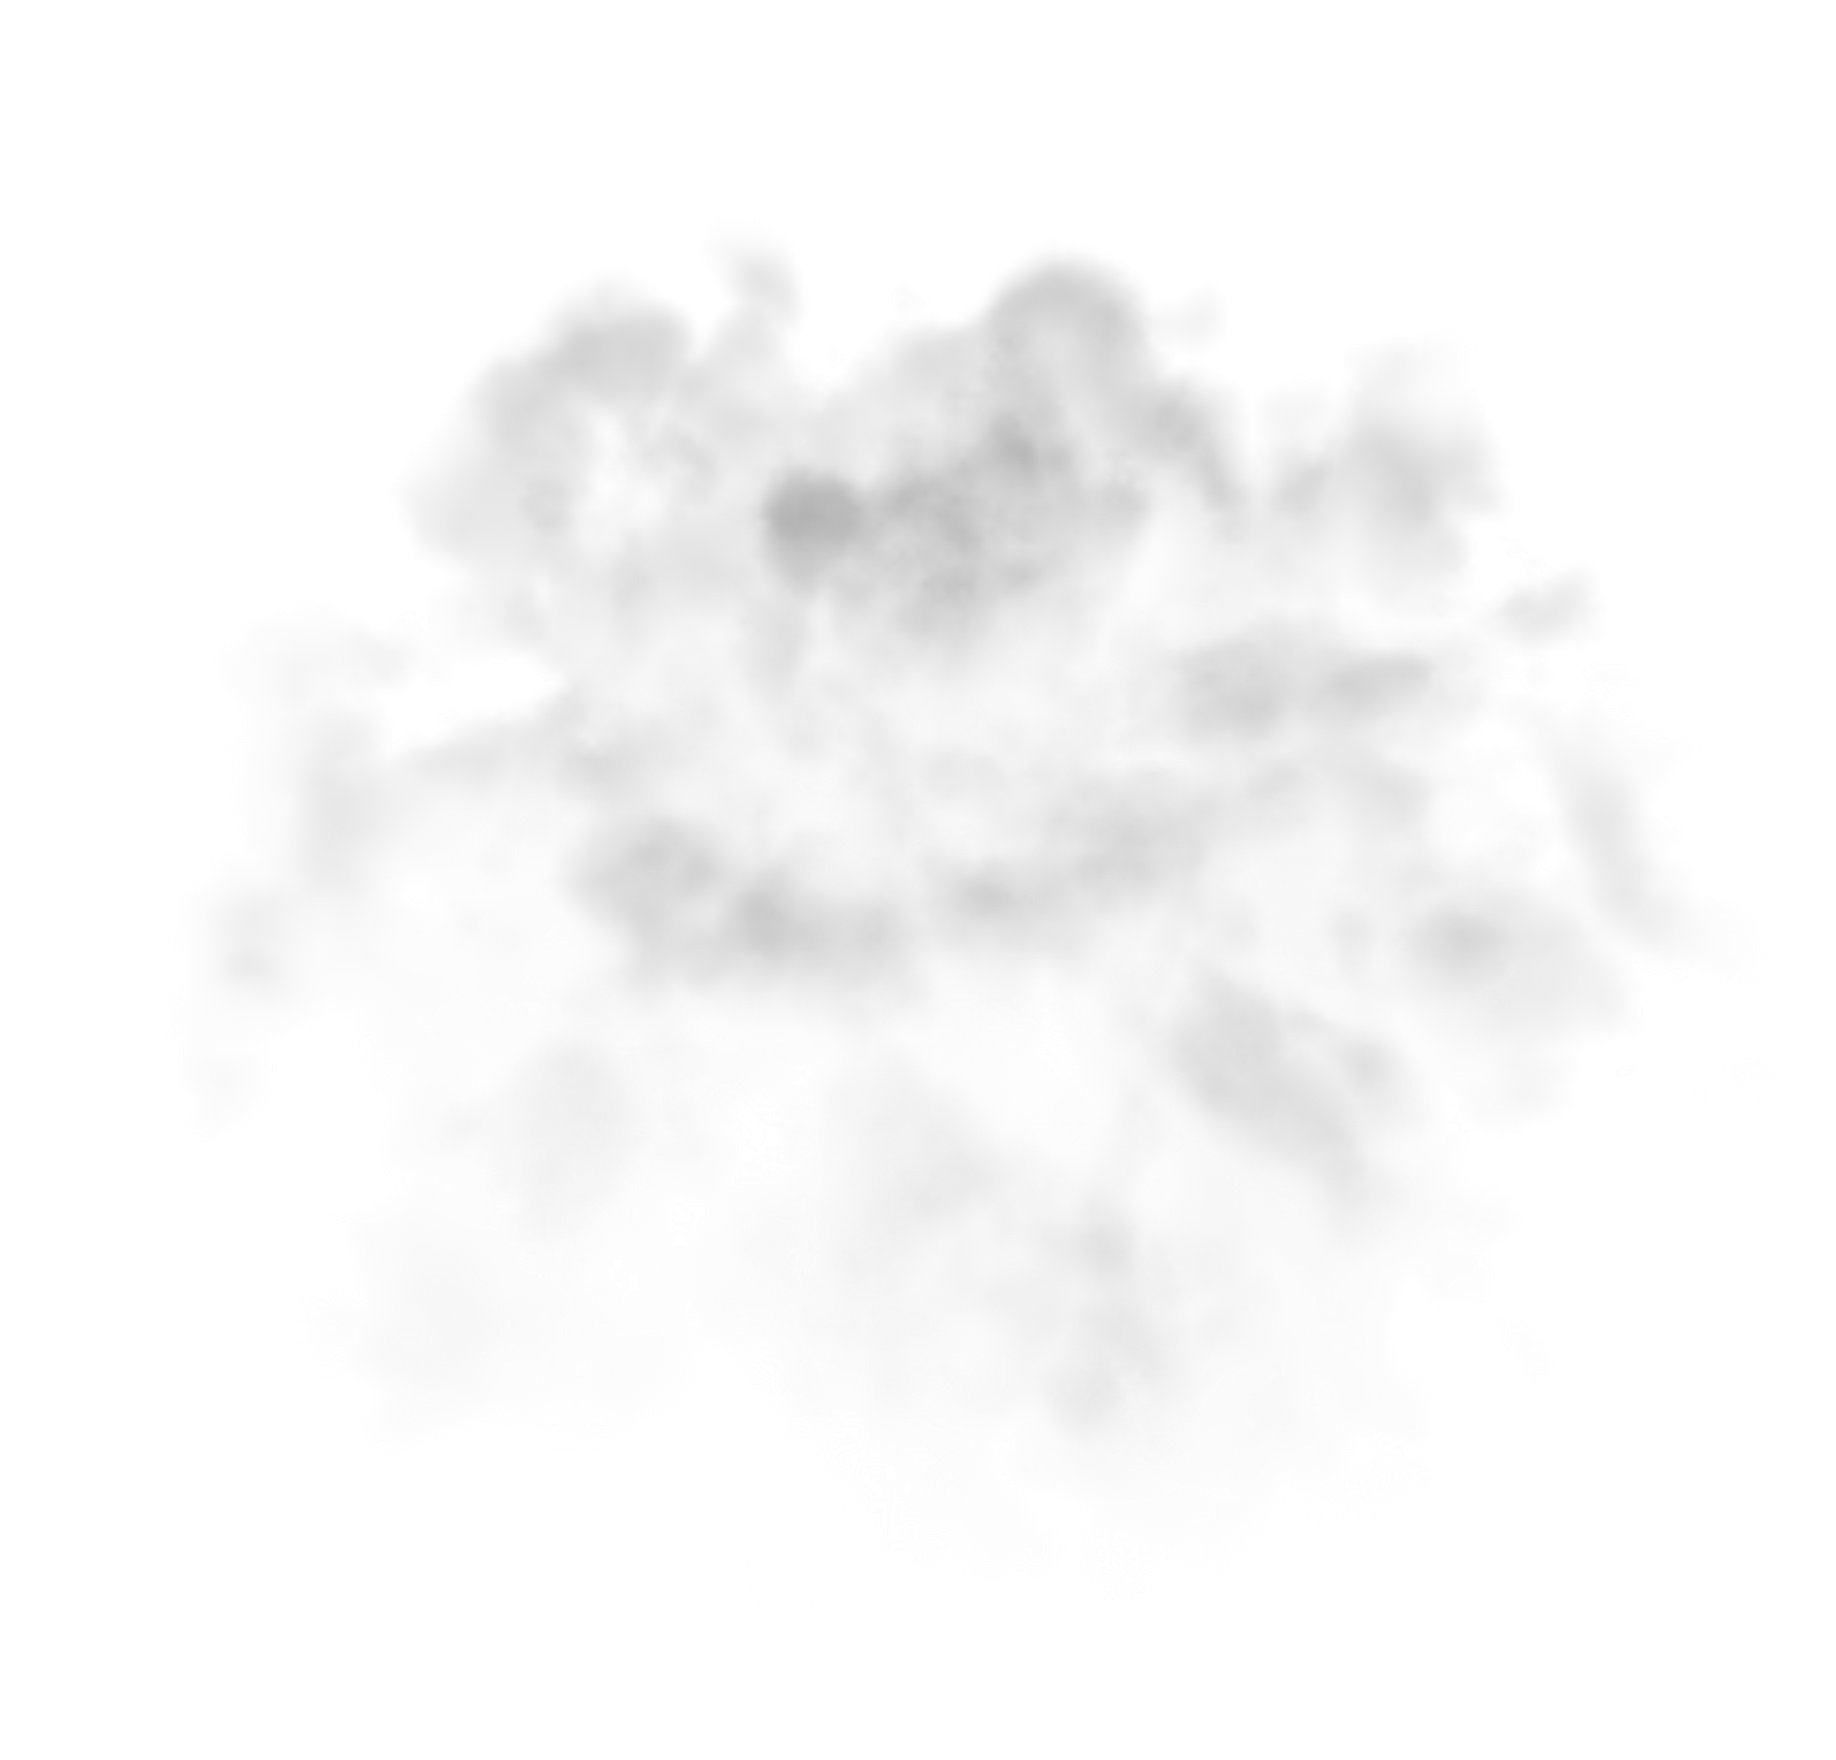 Light smoke png. Hd transparent images pluspng